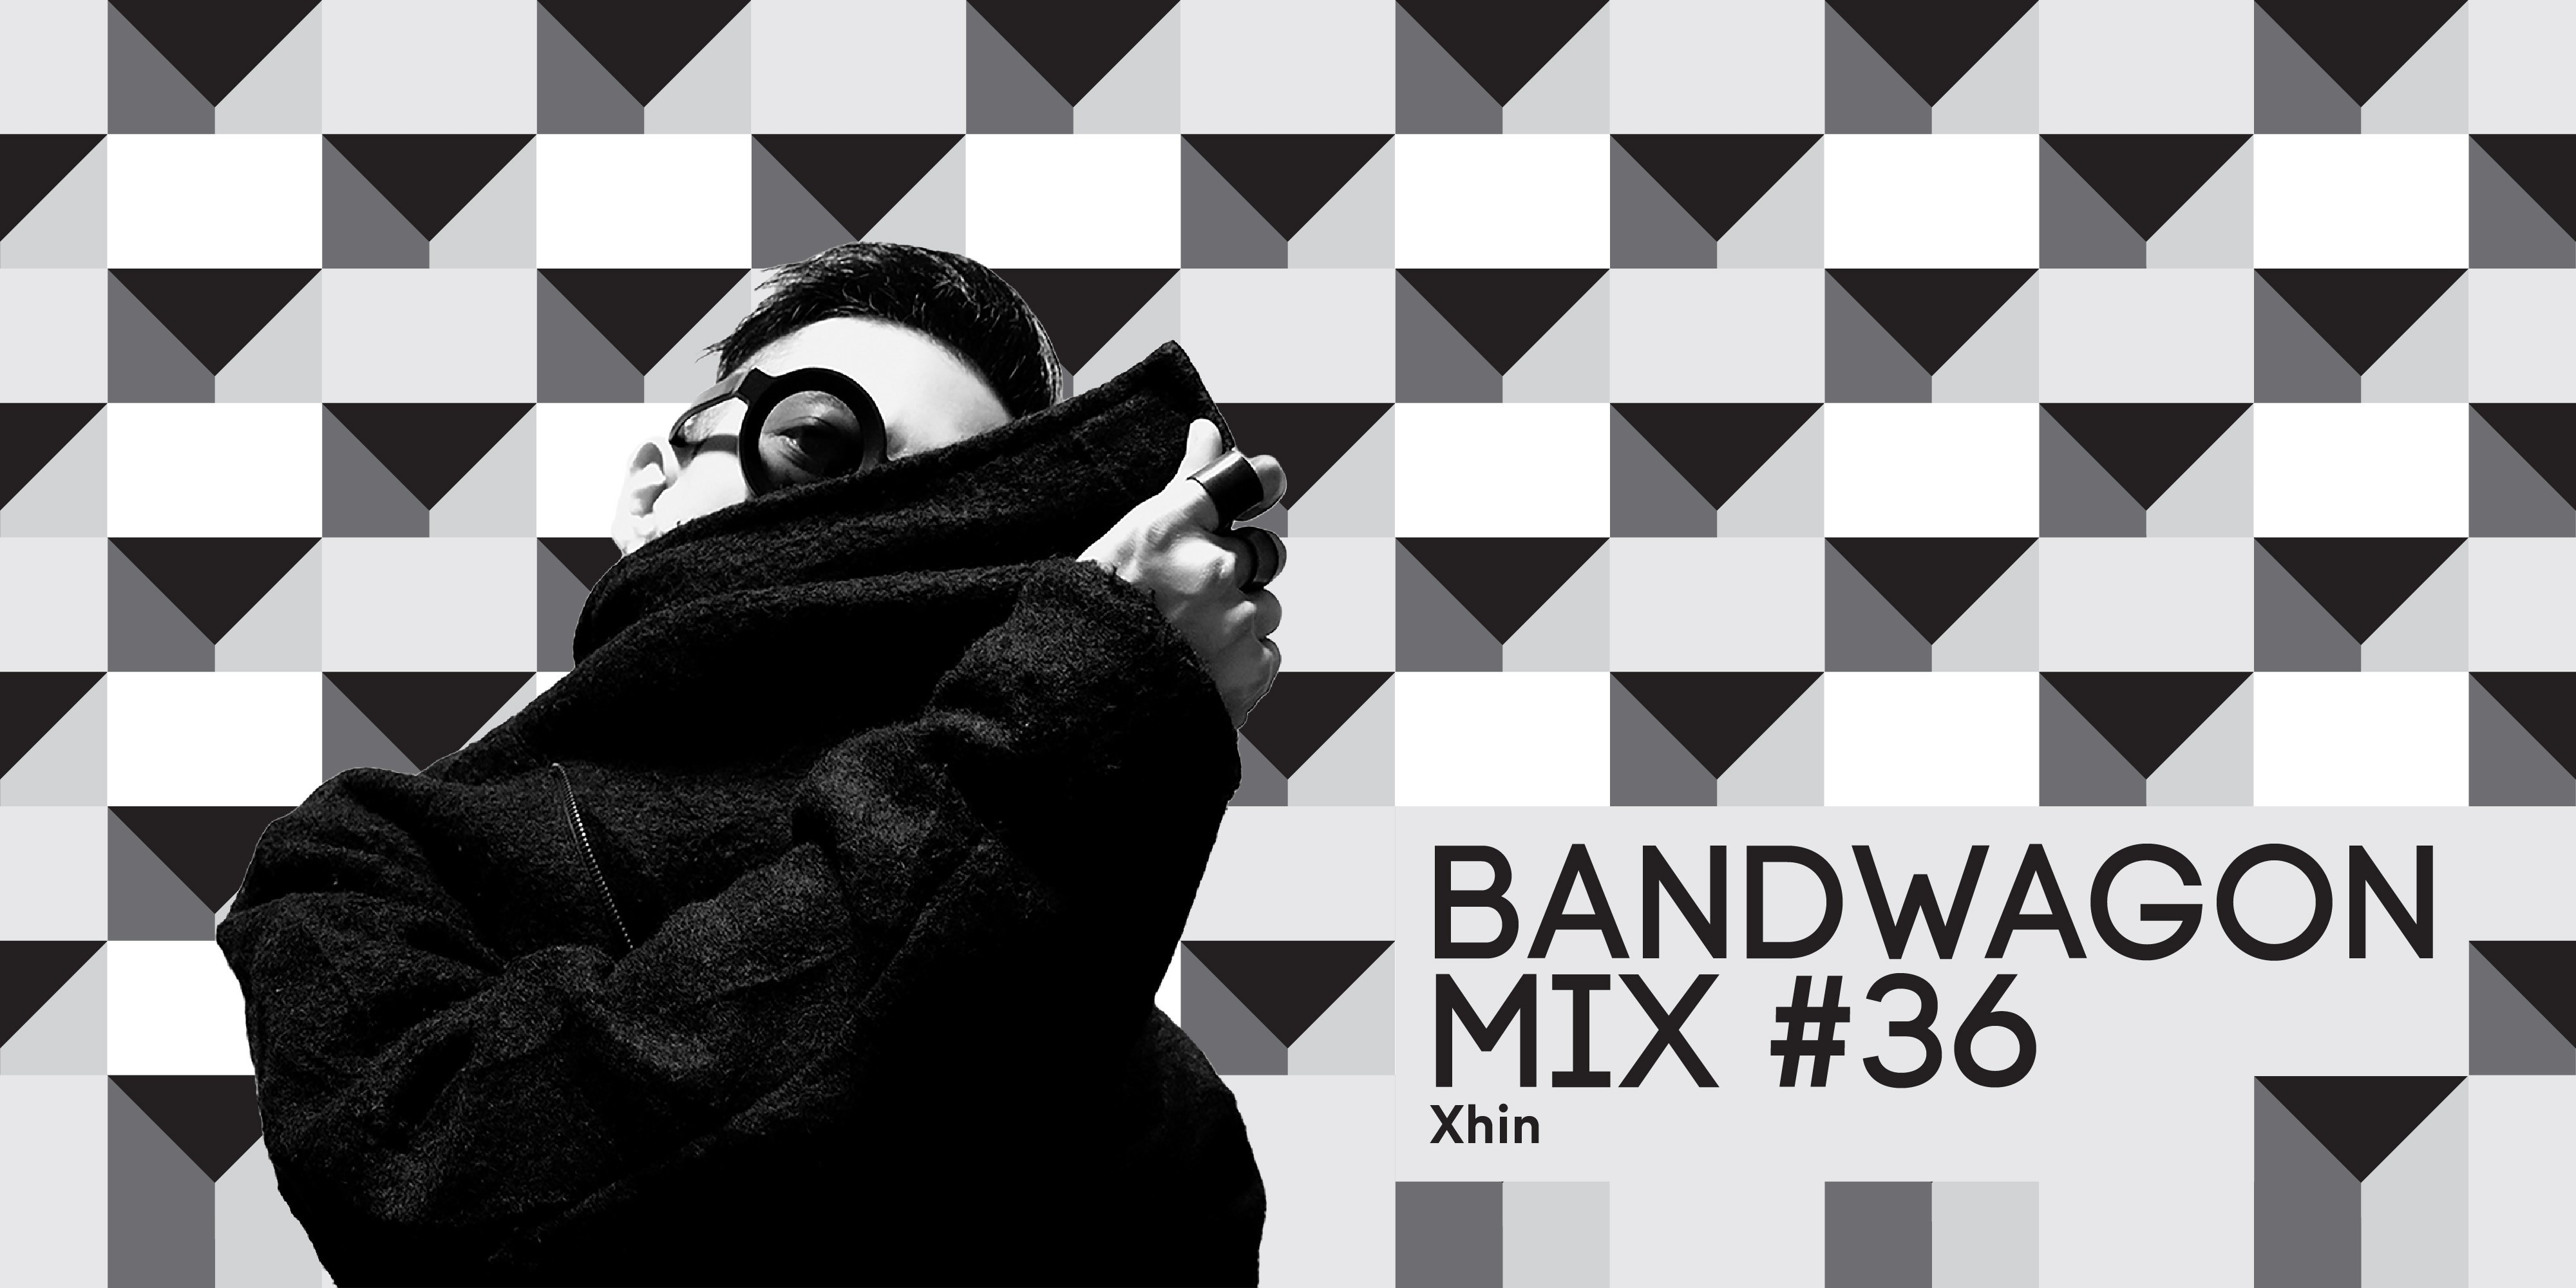 Bandwagon Mix #36: Xhin